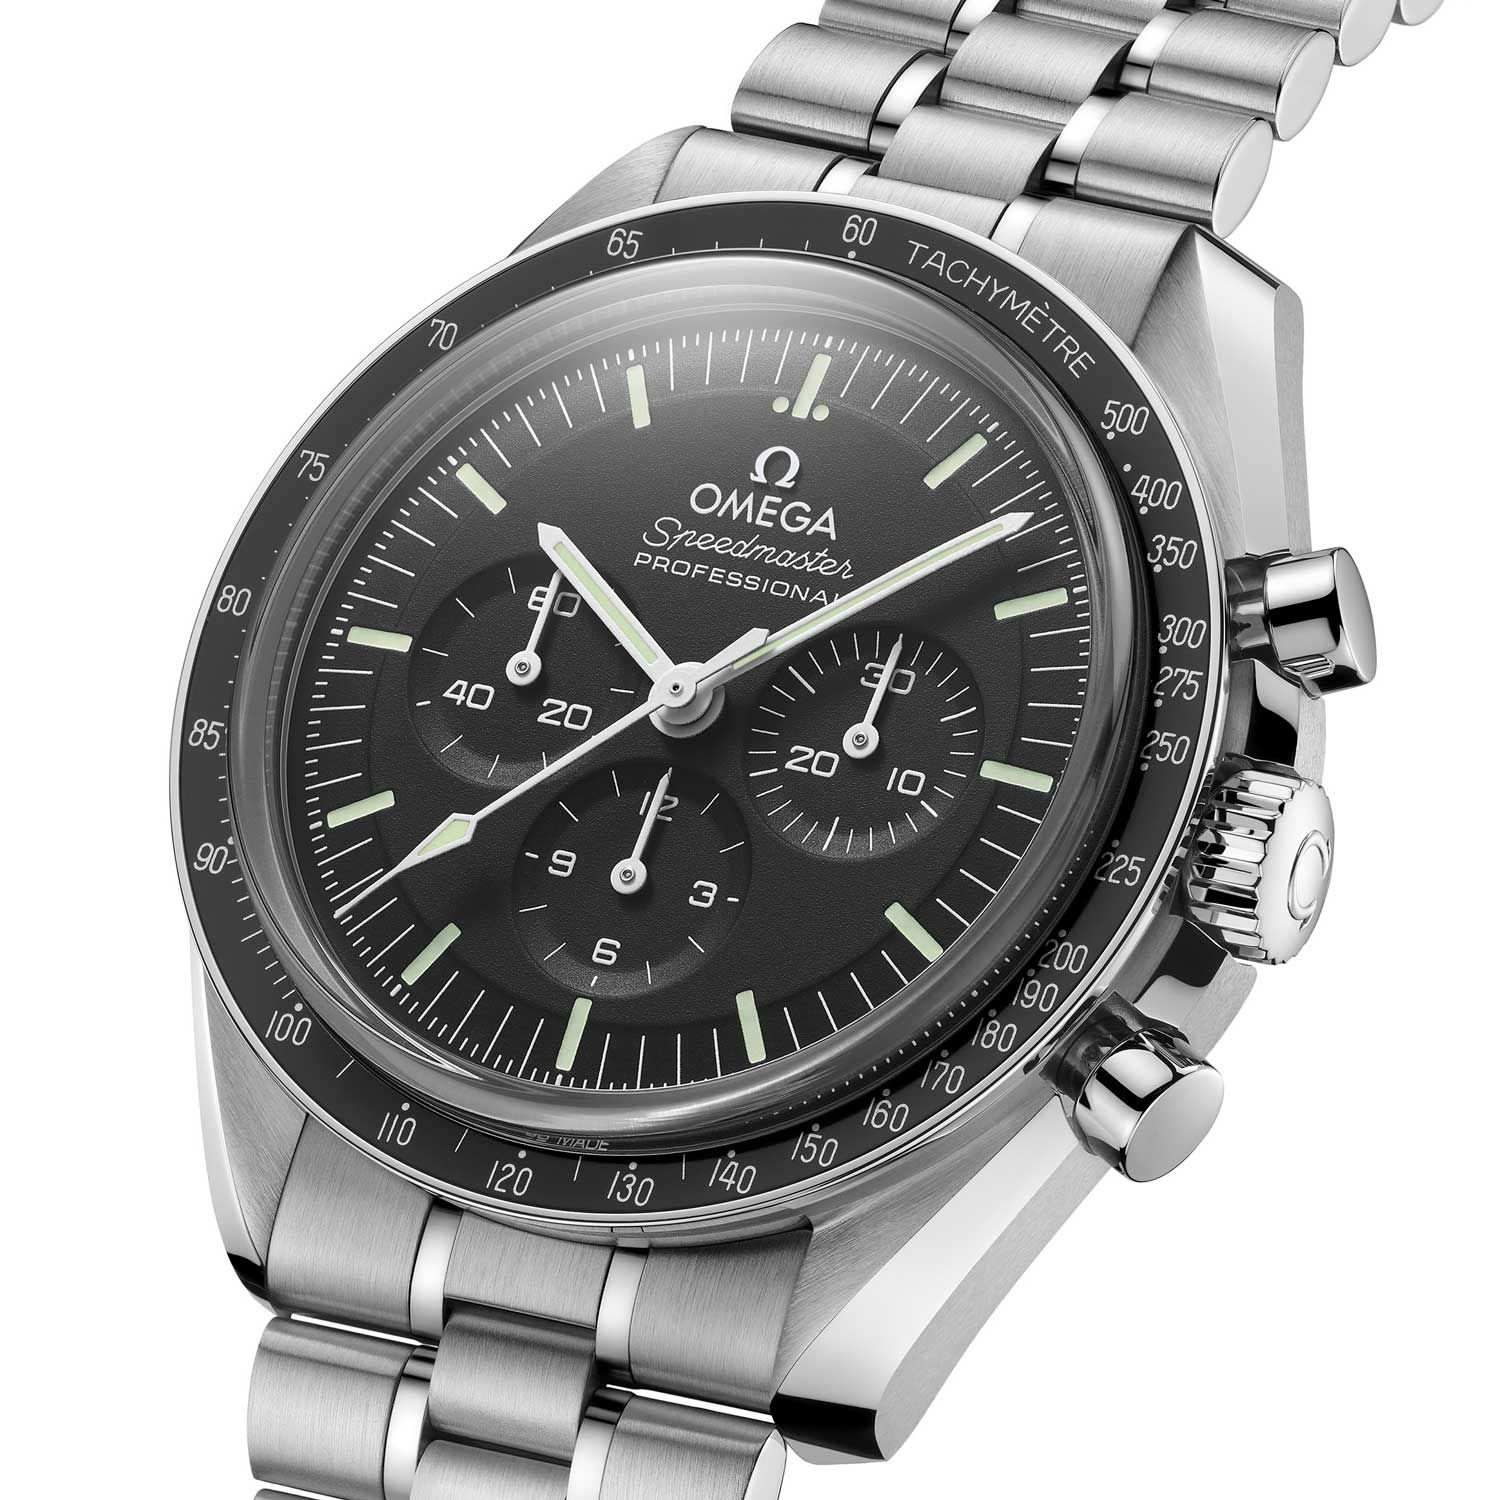 The 2021 Master Chronometer Certified Speedmaster features a stepped dial with the new 3-hash divisions on the seconds scale